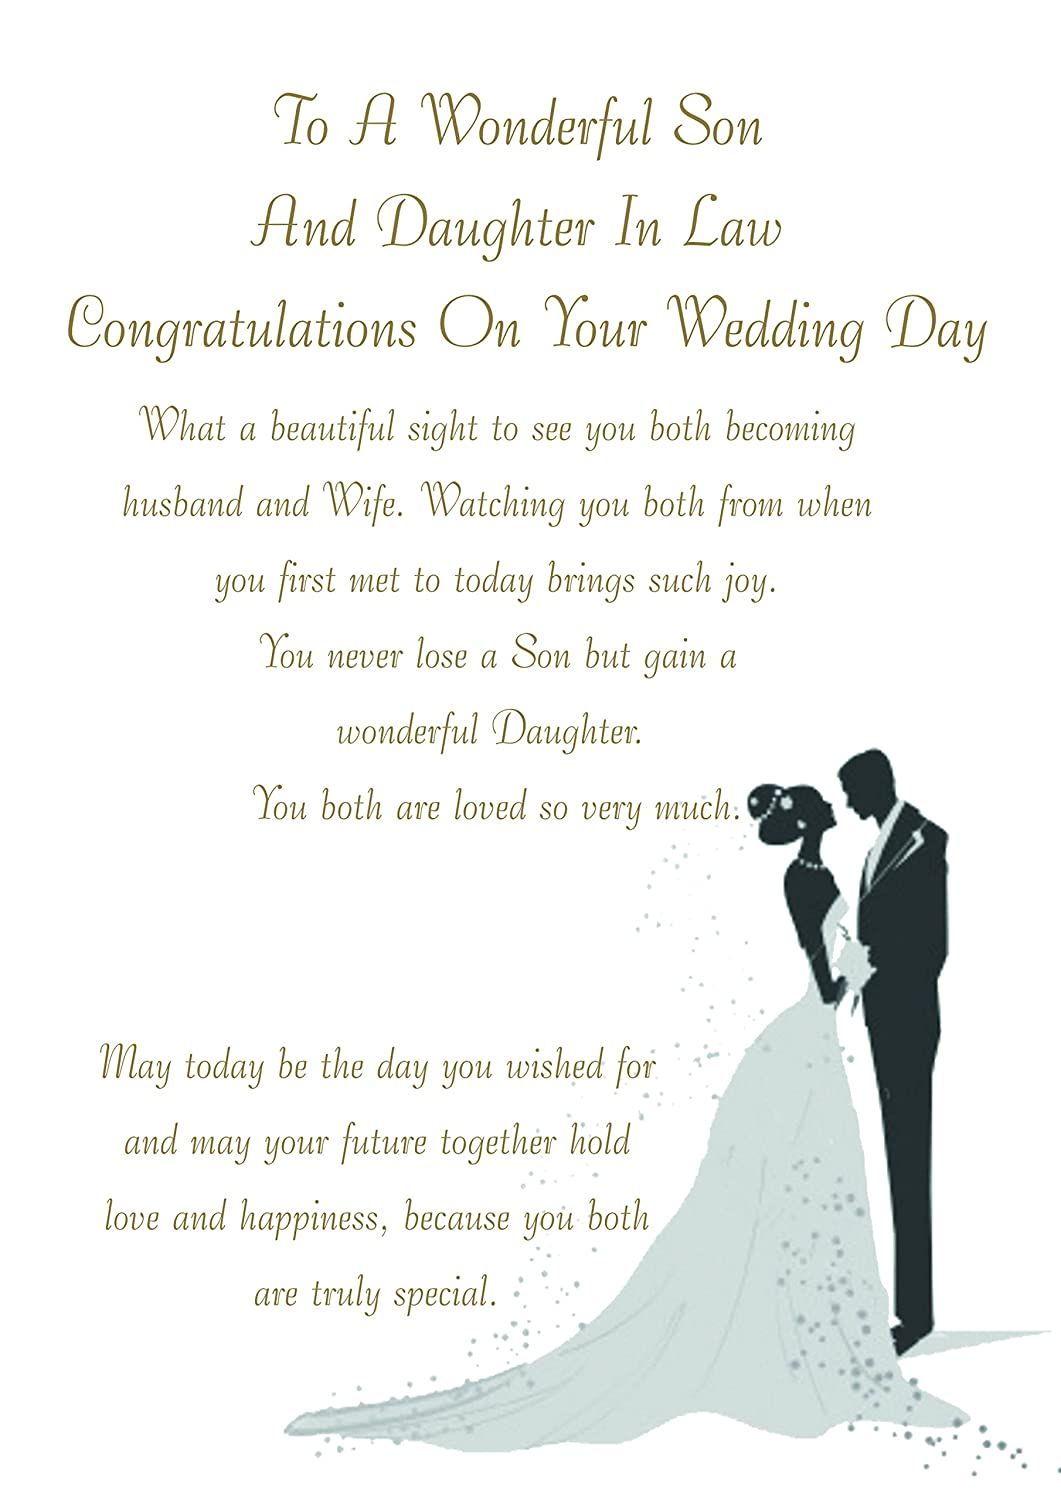 SON /& WIFE WEDDING DAY CARD ~ WEDDING CAR DESIGN  QUALITY CARD NICE VERSE